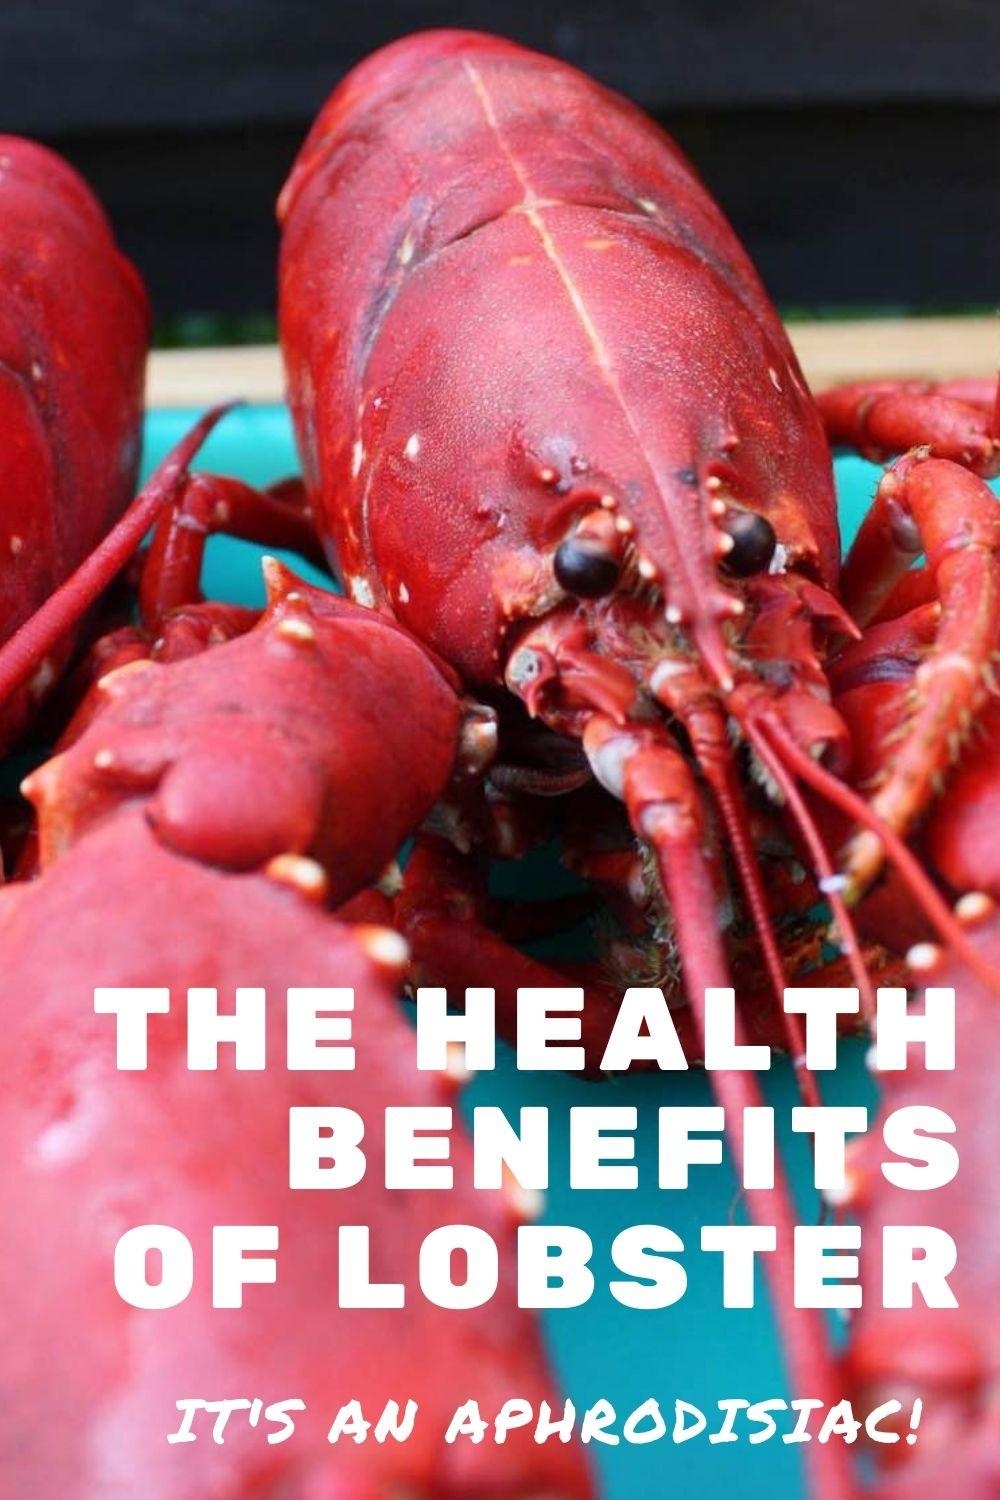 health benefits of lobster graphic